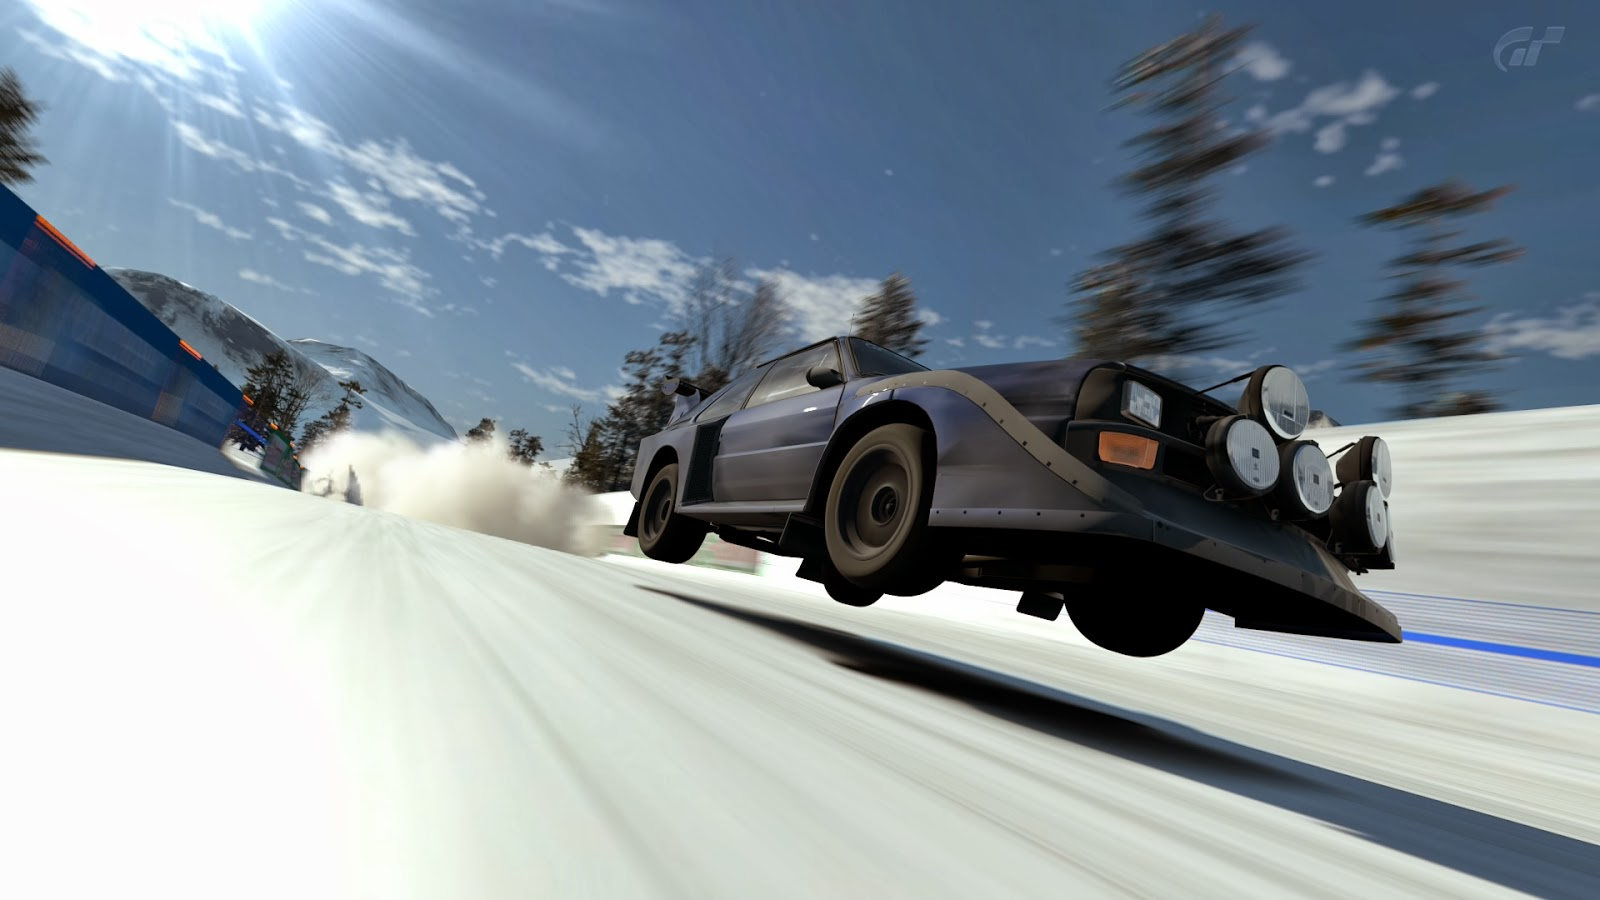 There are no extra rally circuits in gt6 so chamonix remains the only snowy location thankfully it s a pretty good one